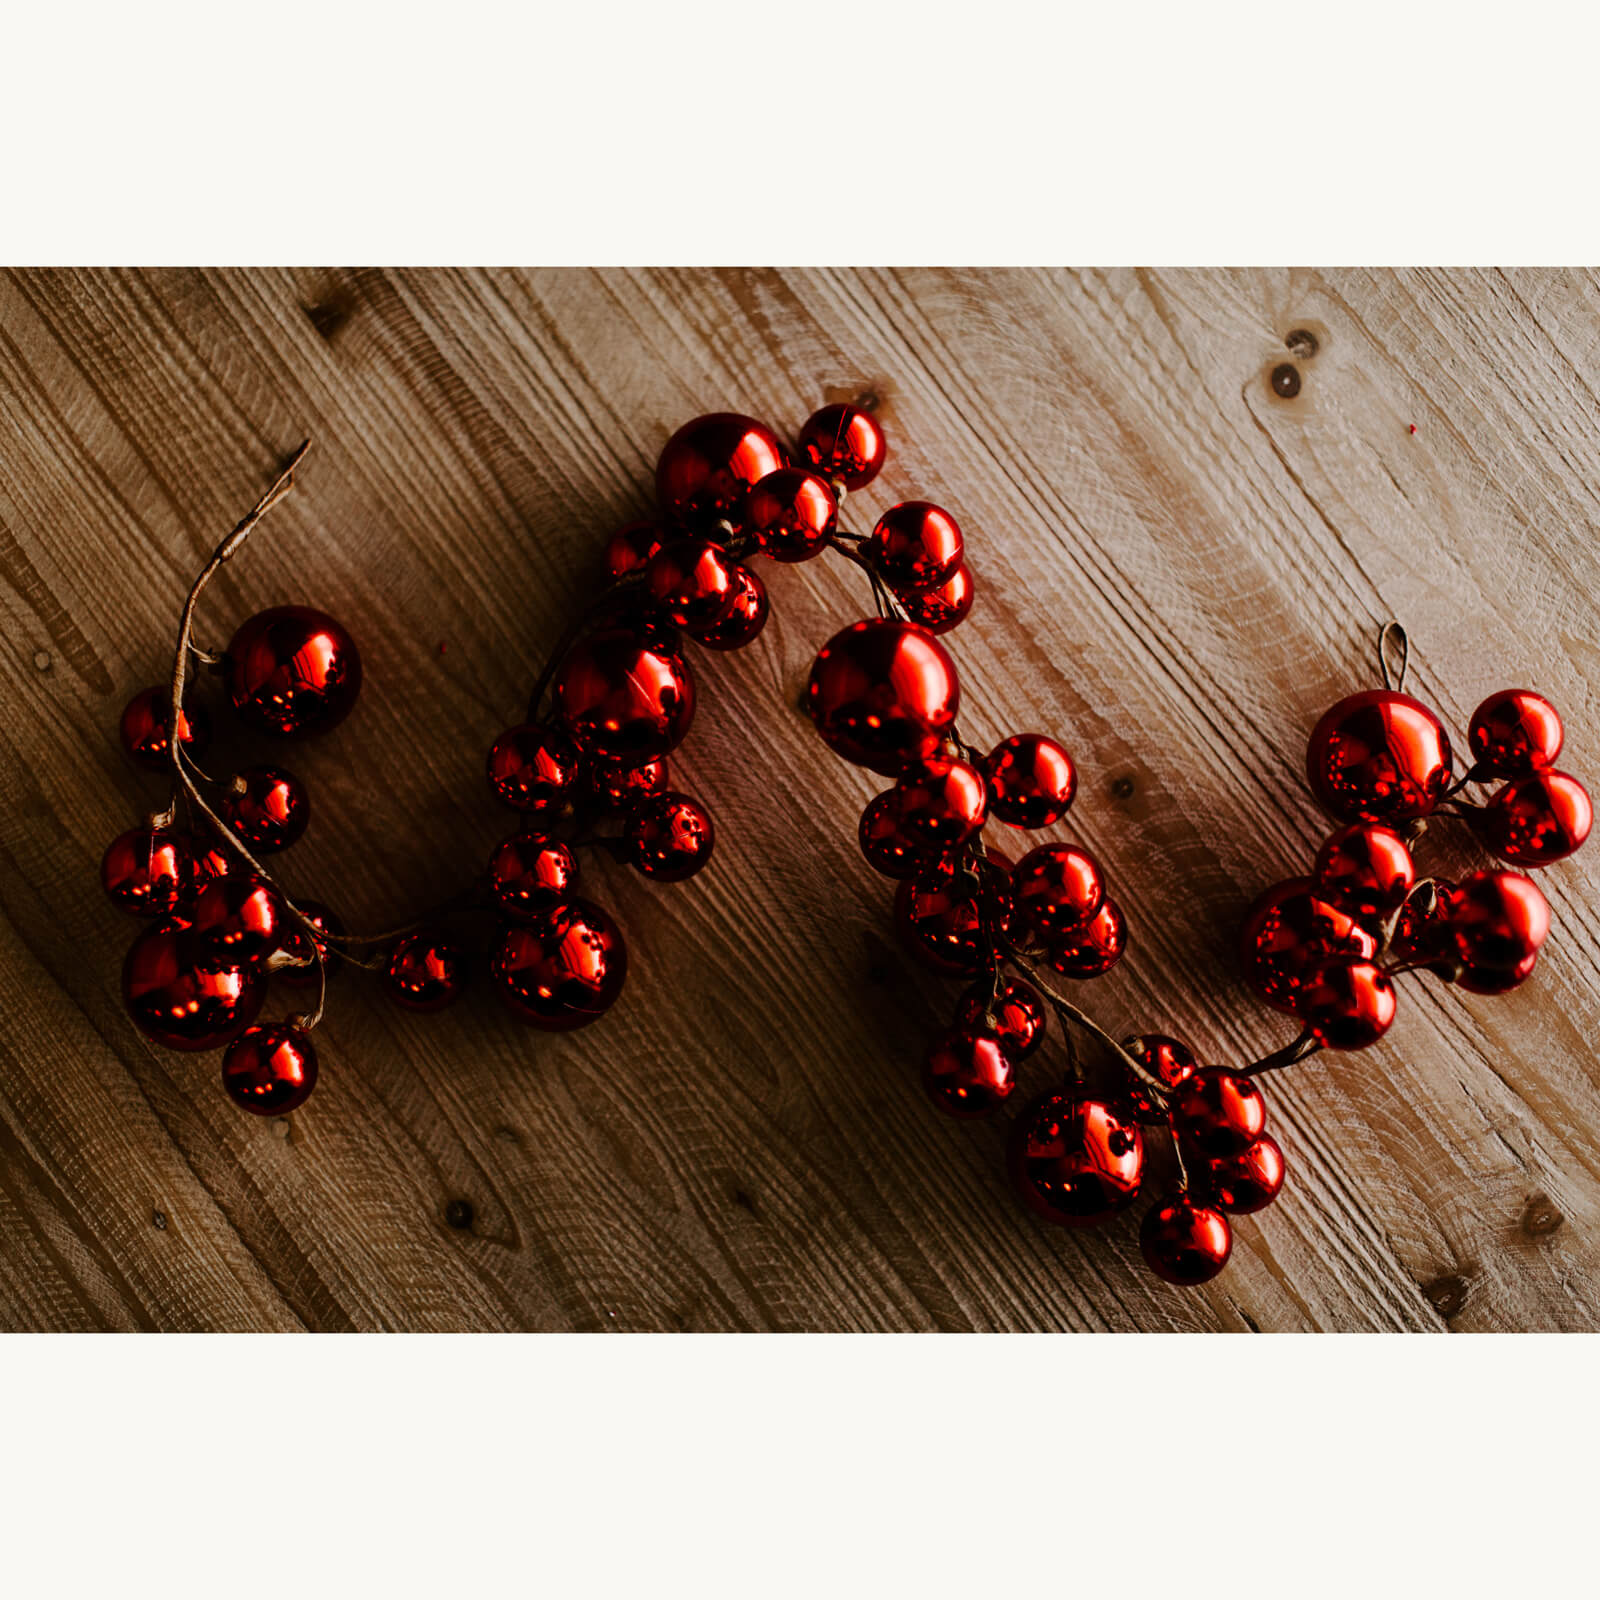 A 4 foot long shiny red ball garland made up of different sized red balls ready for christmas decorating